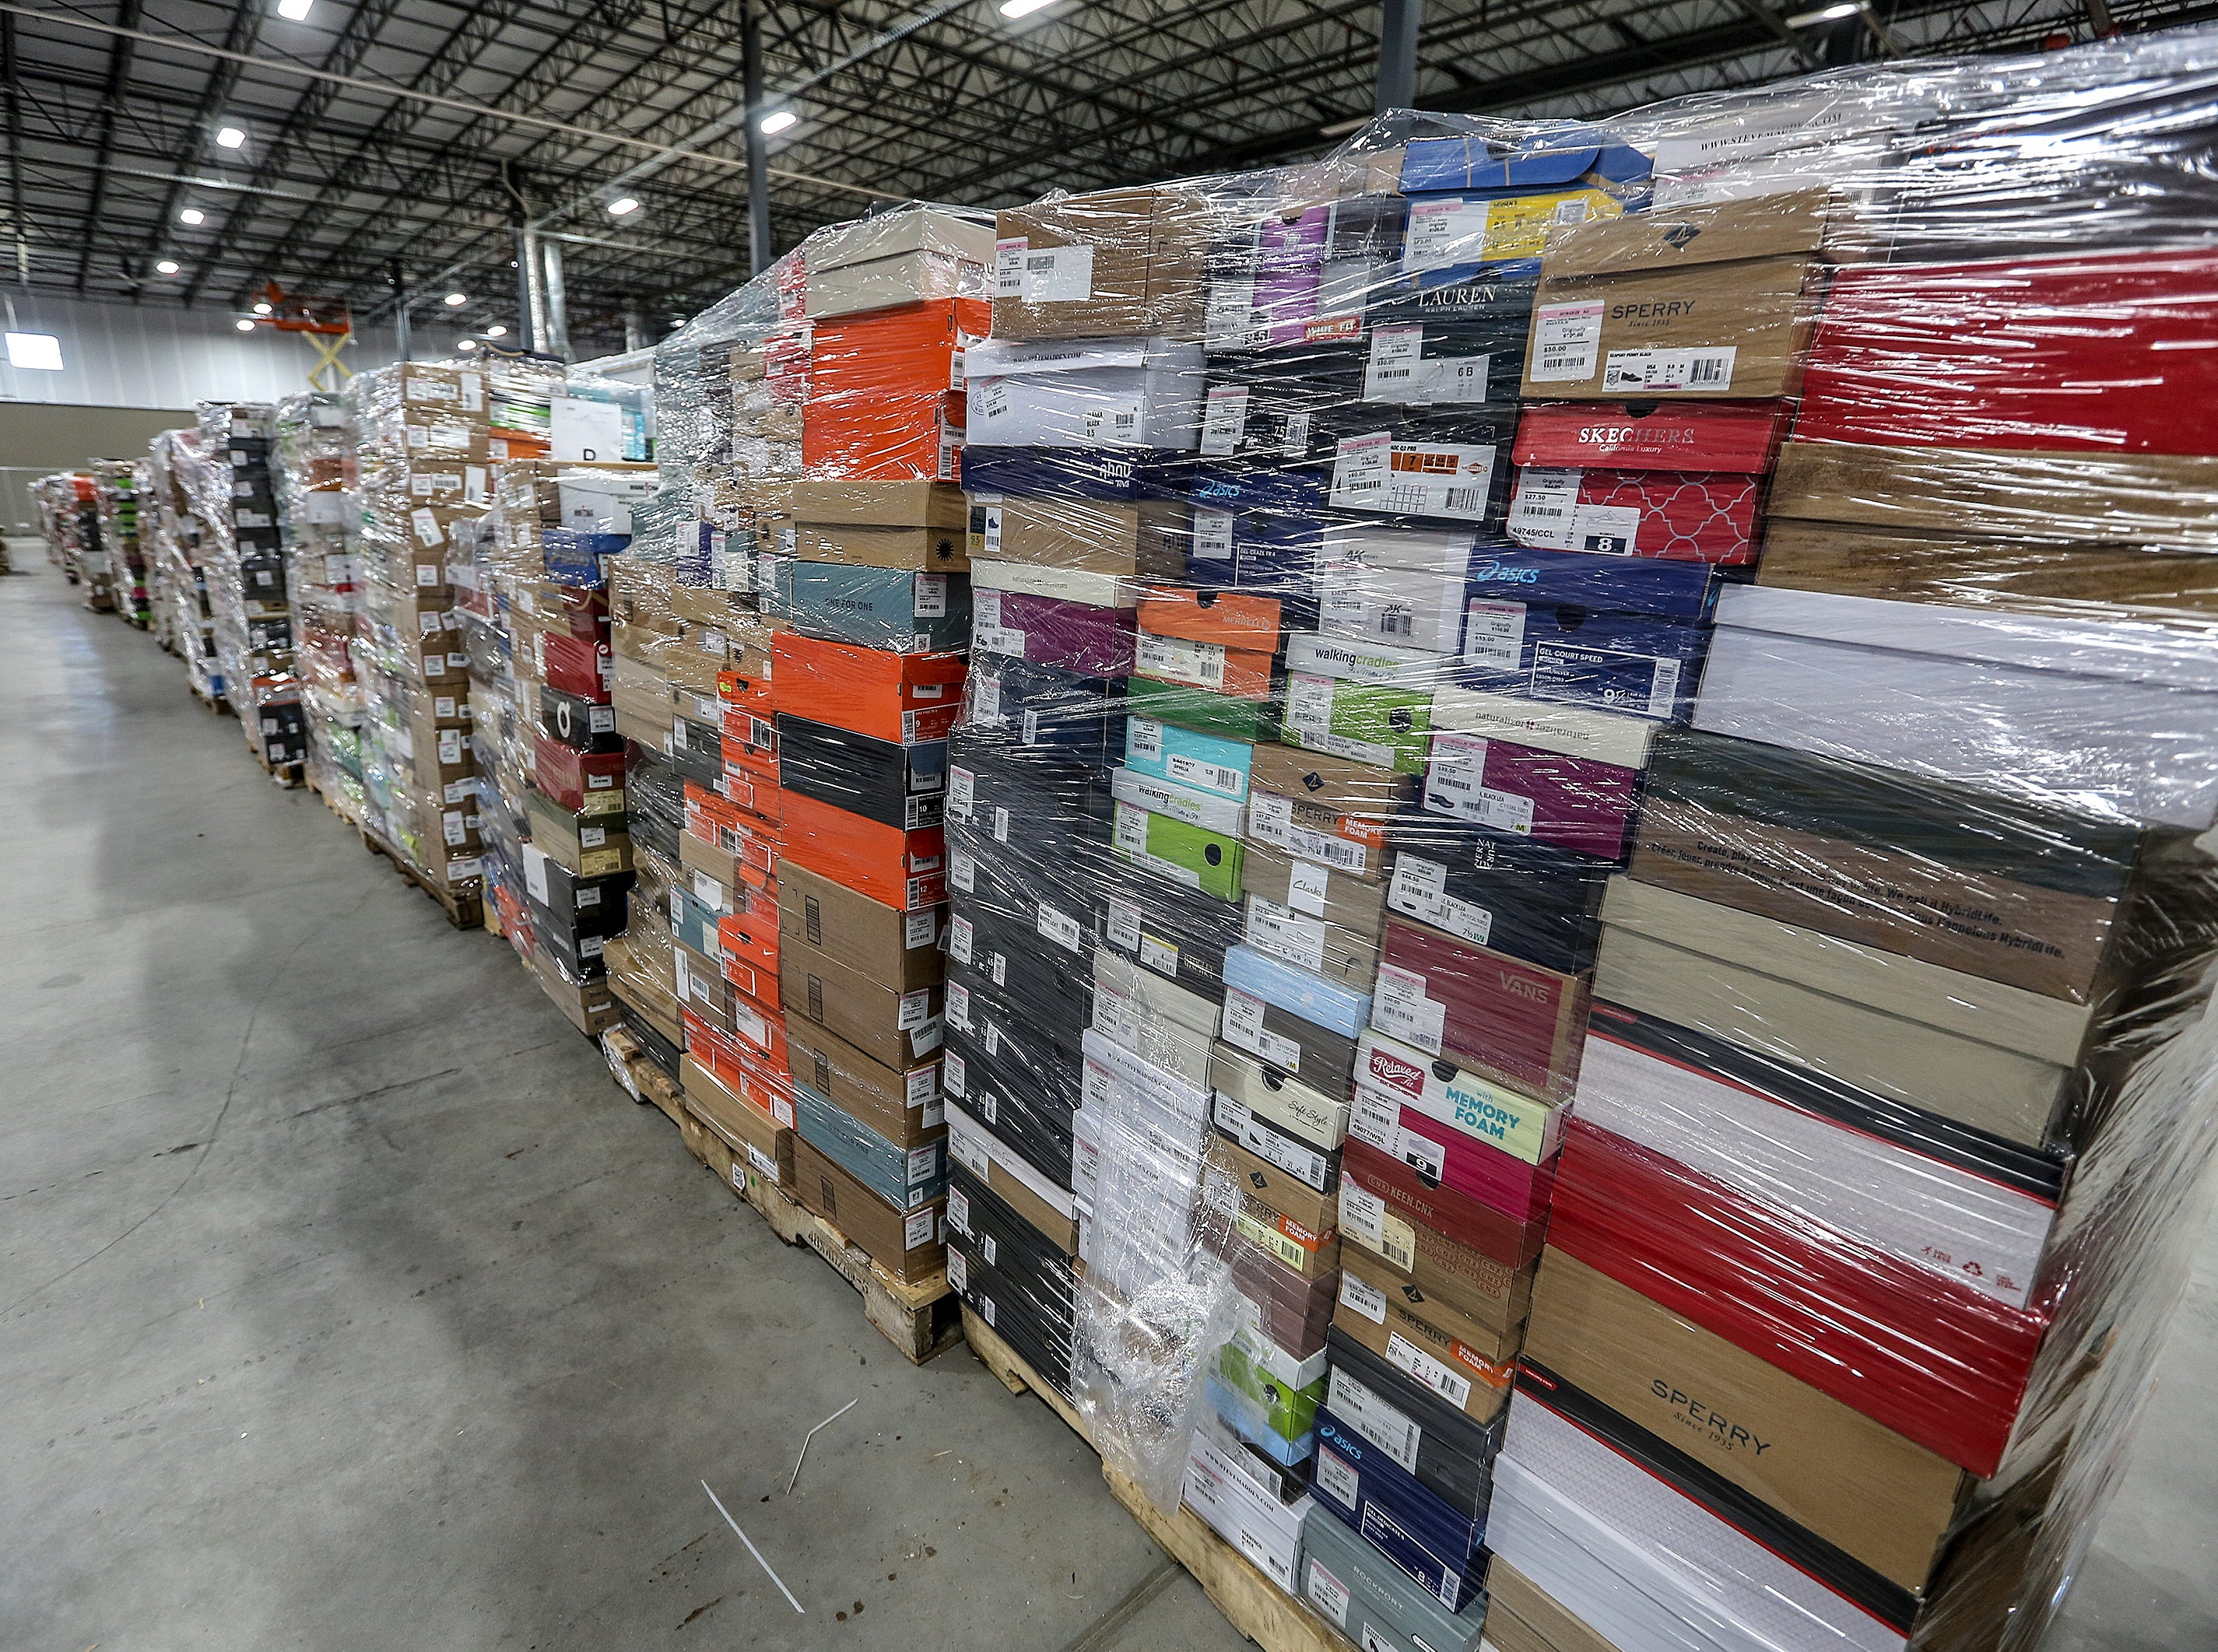 Tens of thousands of shoes are arriving at the new Zappos facility on Minors Lane.